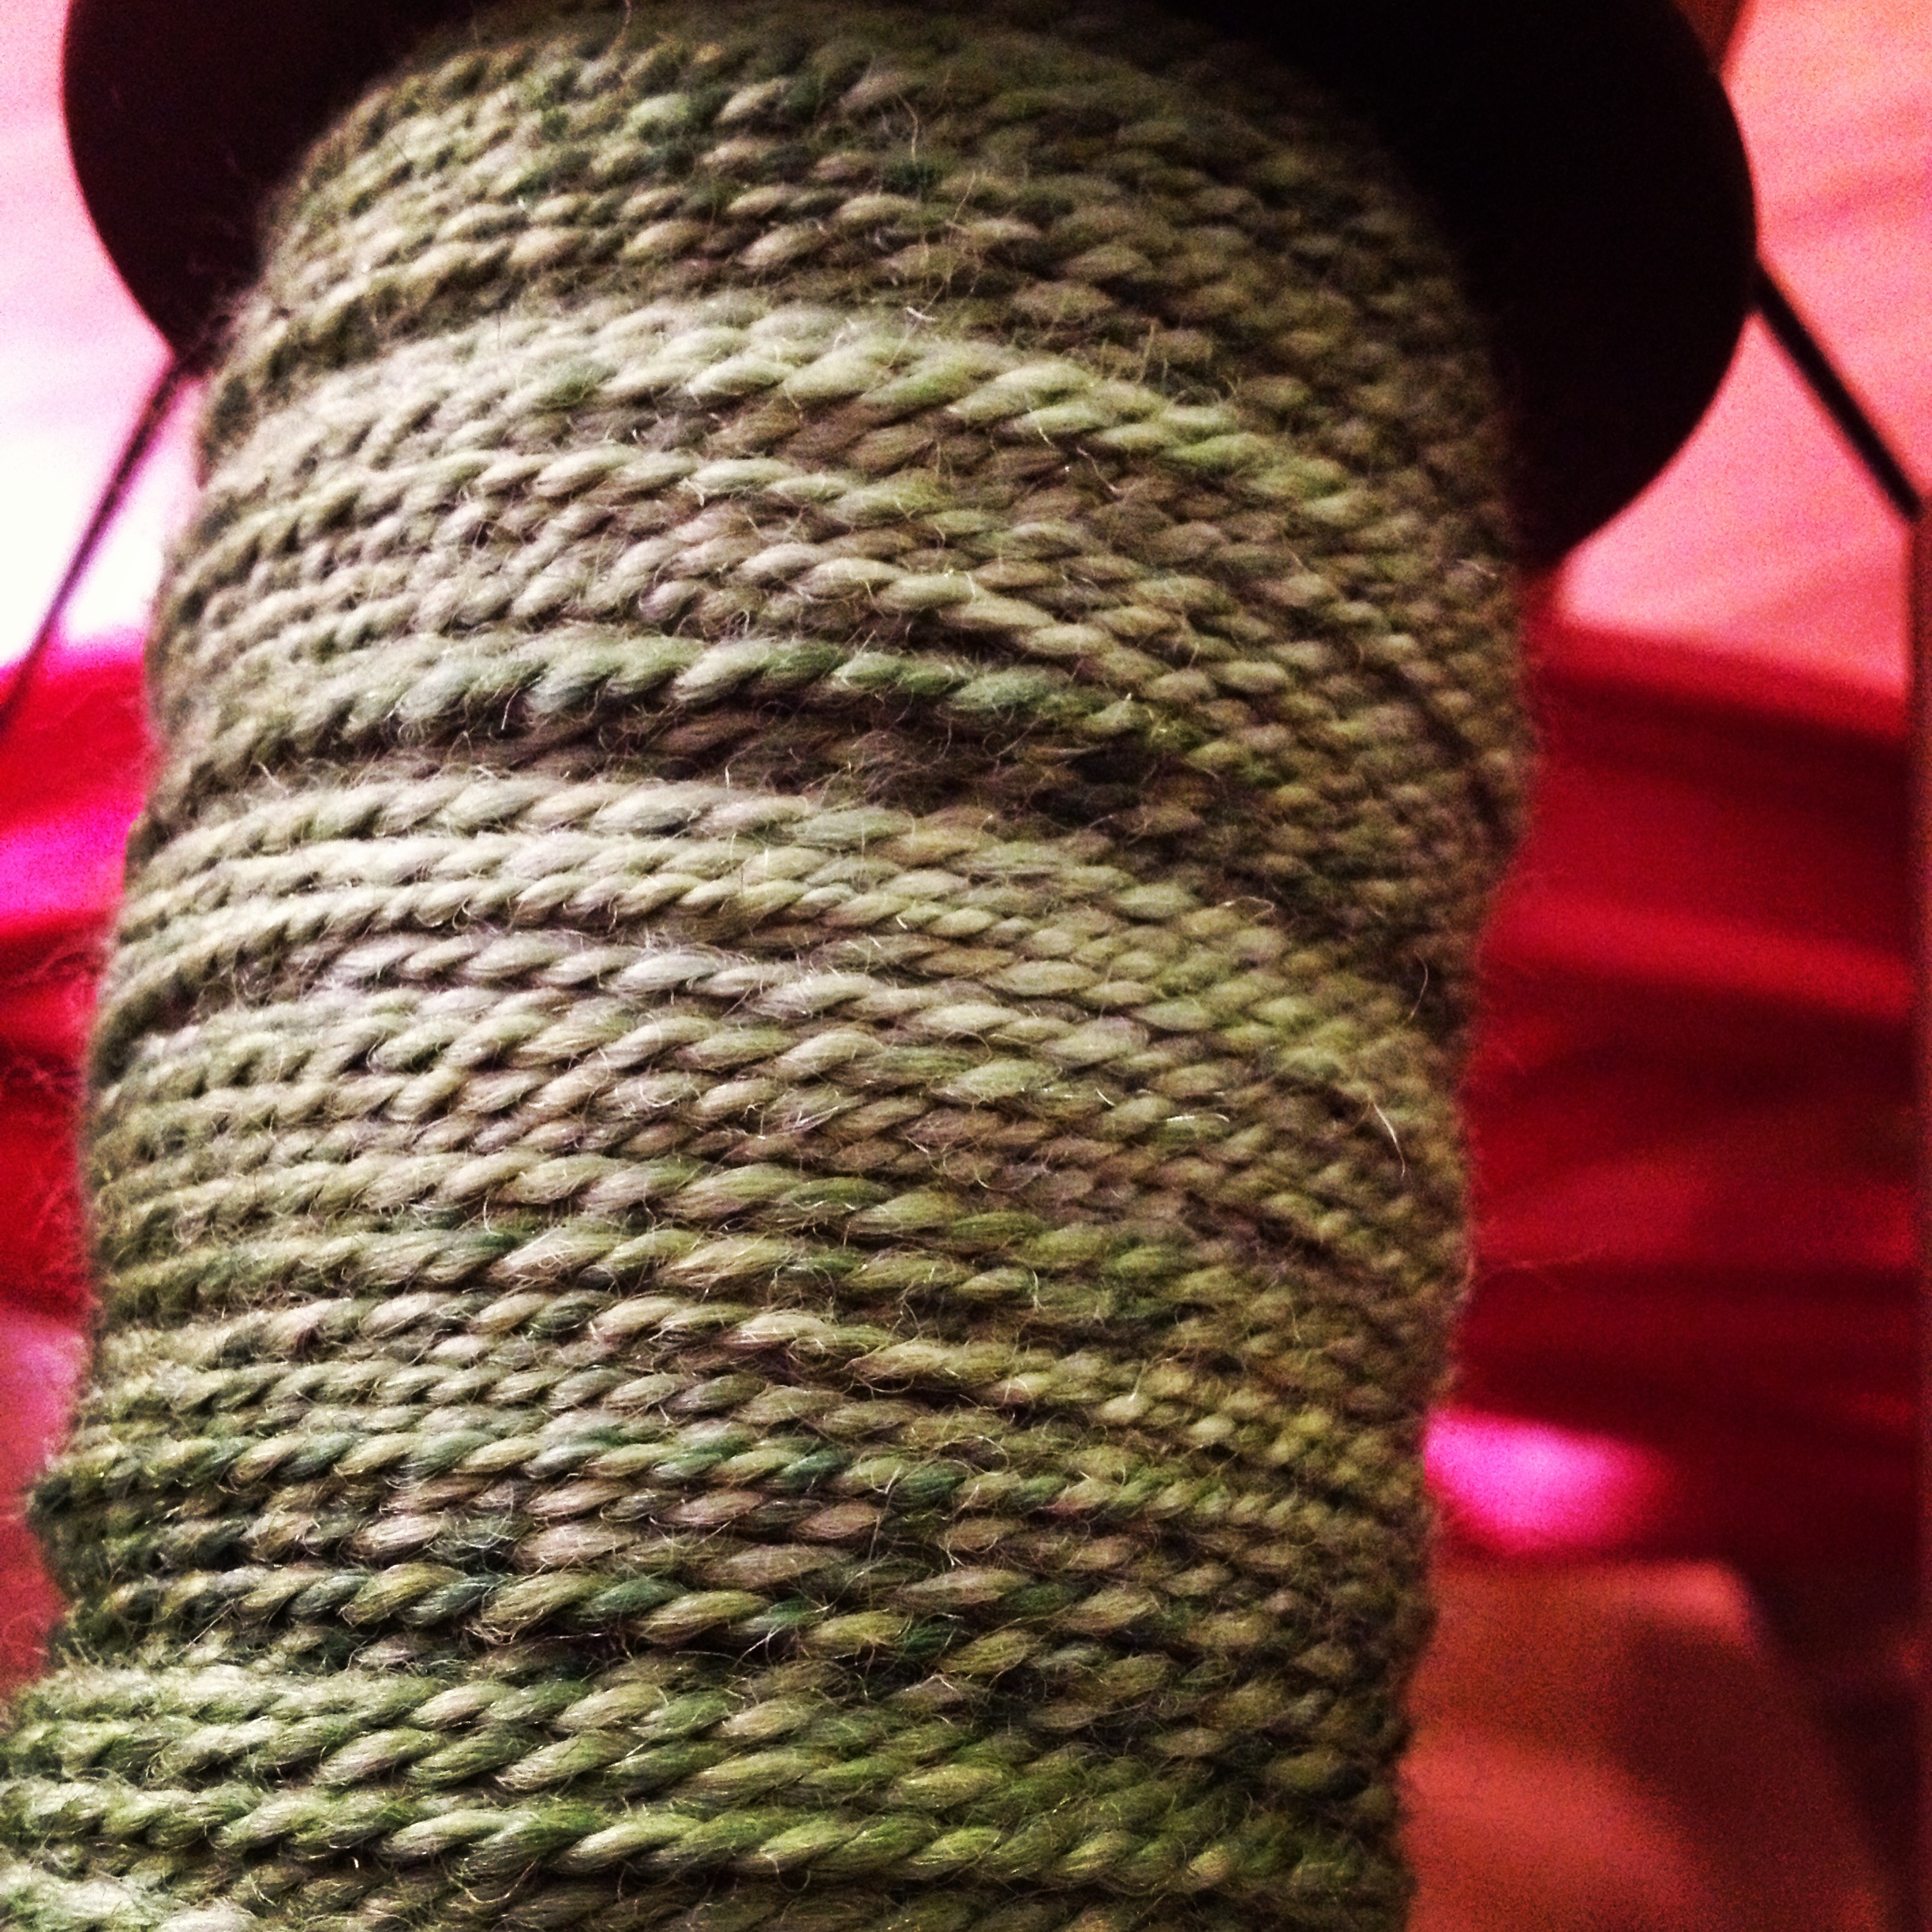 Day 7 - Plying the green singles from the day before.  My niddy-noddy is still in Parry Sound so I can't measure it yet, but I will be home this weekend so I can get it skeined and washed.